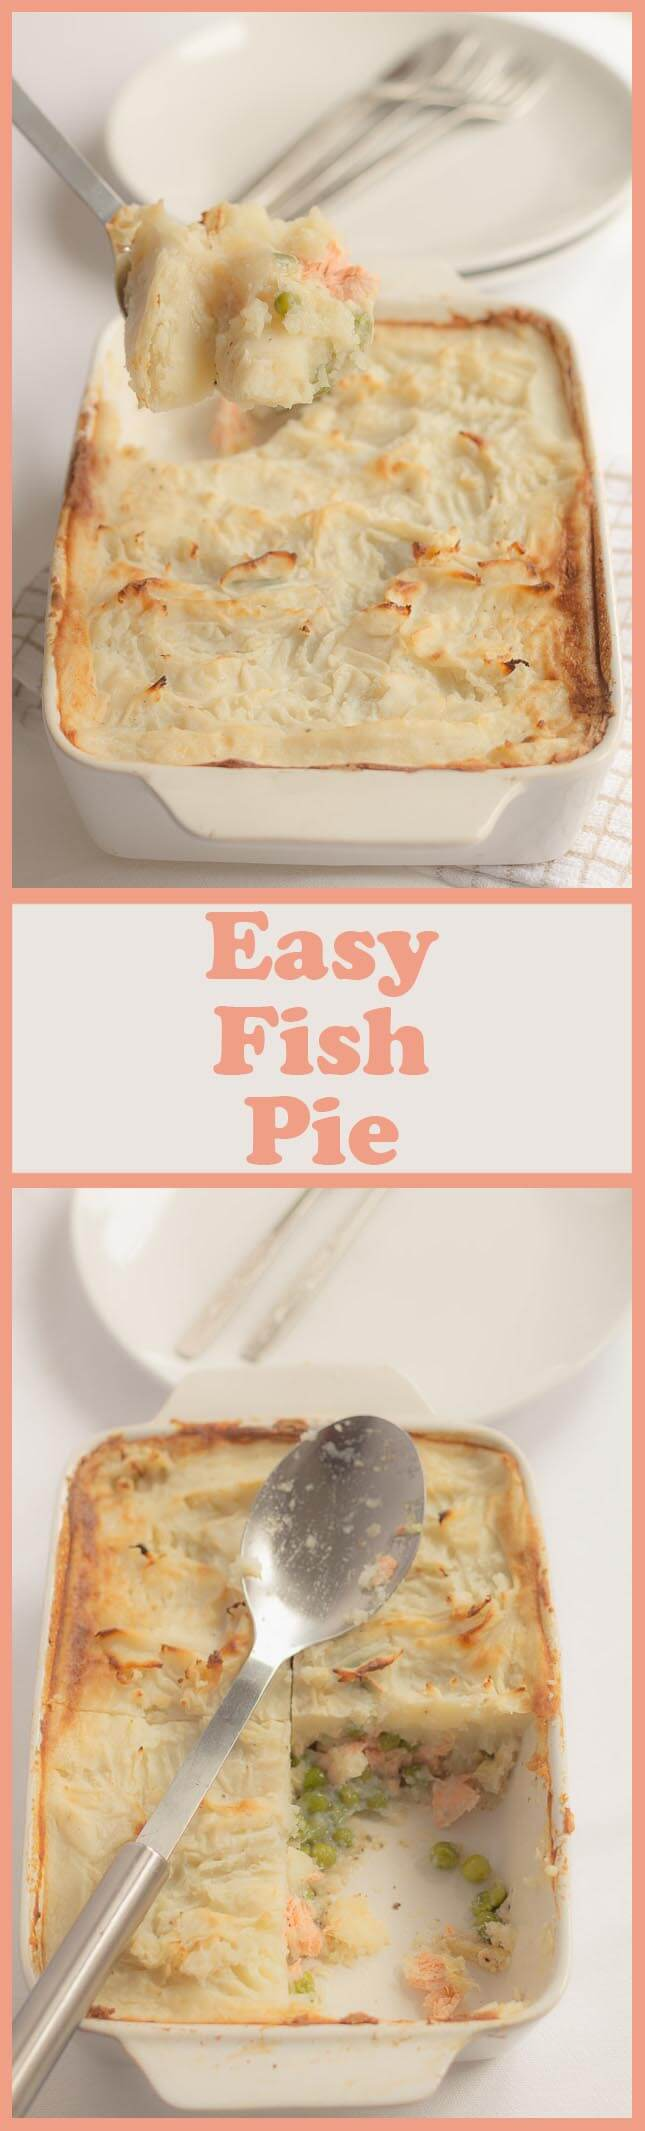 This easy healthy fish pie makes an excellent weekday family dinner for 4 and can be on the table in about one hour. Not only is it packed full of protein and taste but each serving comes in at less than 400 calories and is low in fat, saturated fat, sugar and salt too!